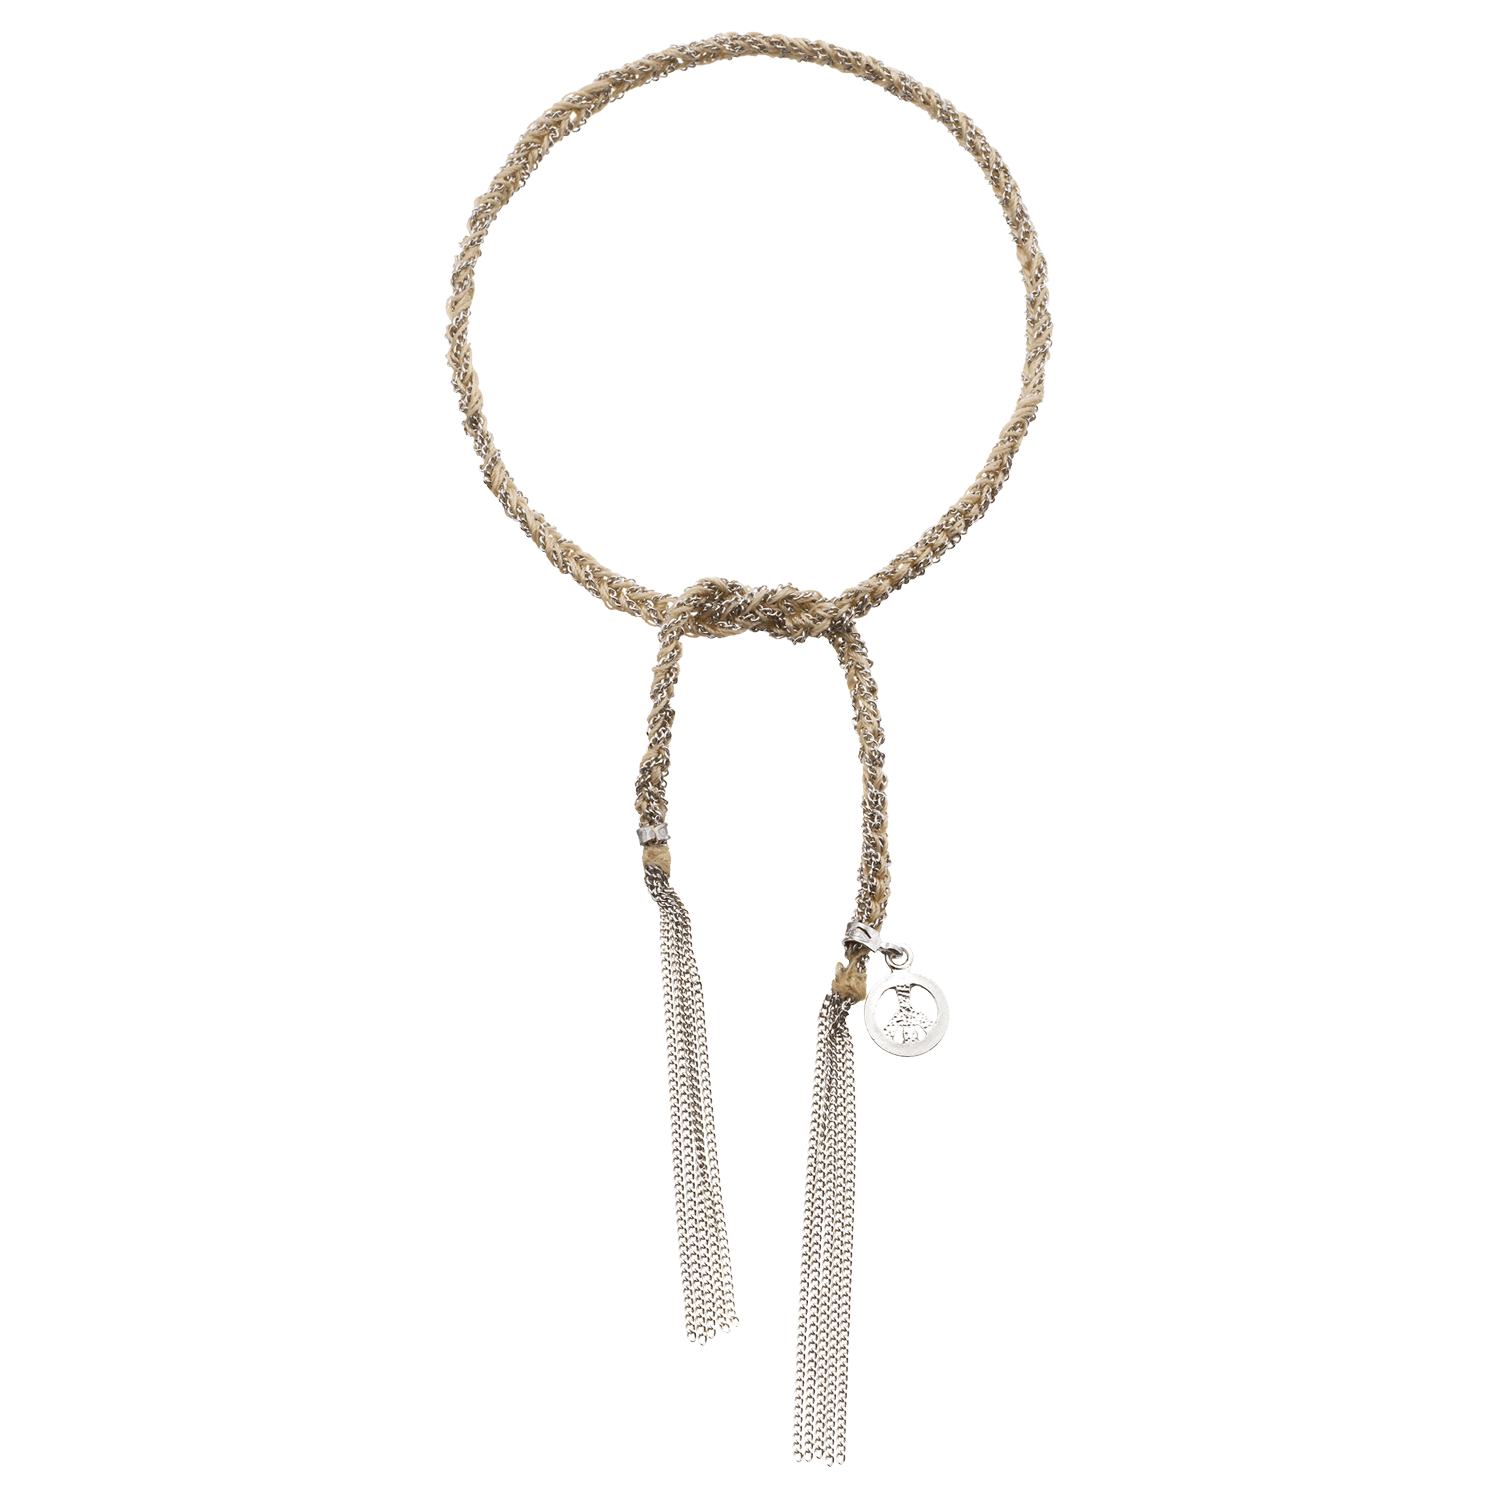 Carolina Bucci Lucky Bracelet with Peace Charm White Gold